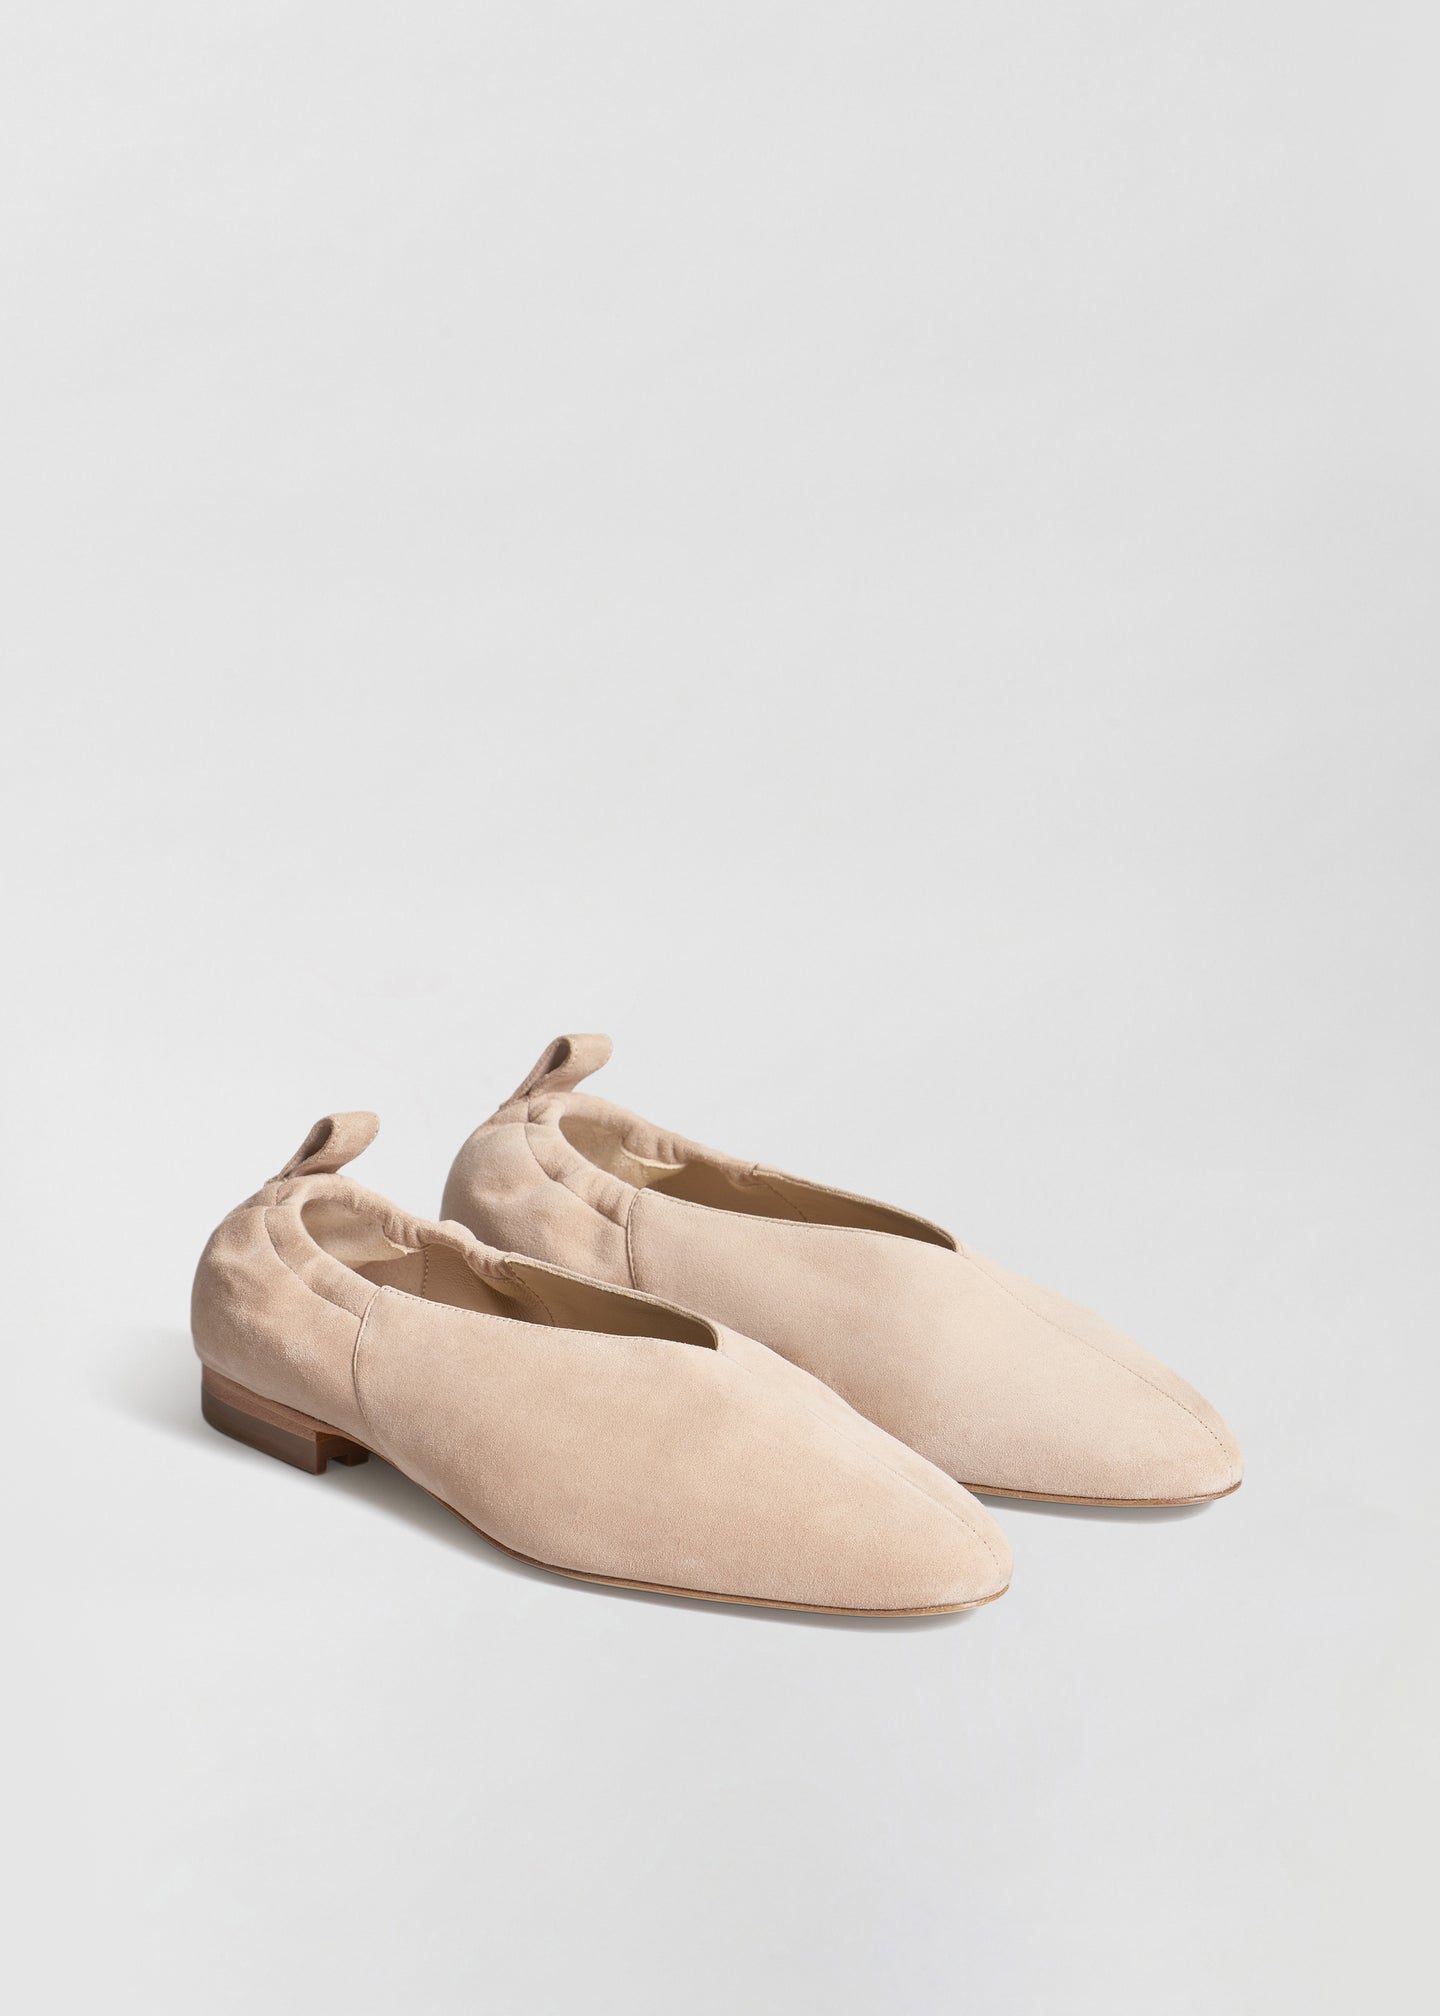 Ballet Flat in Suede - Blush - CO